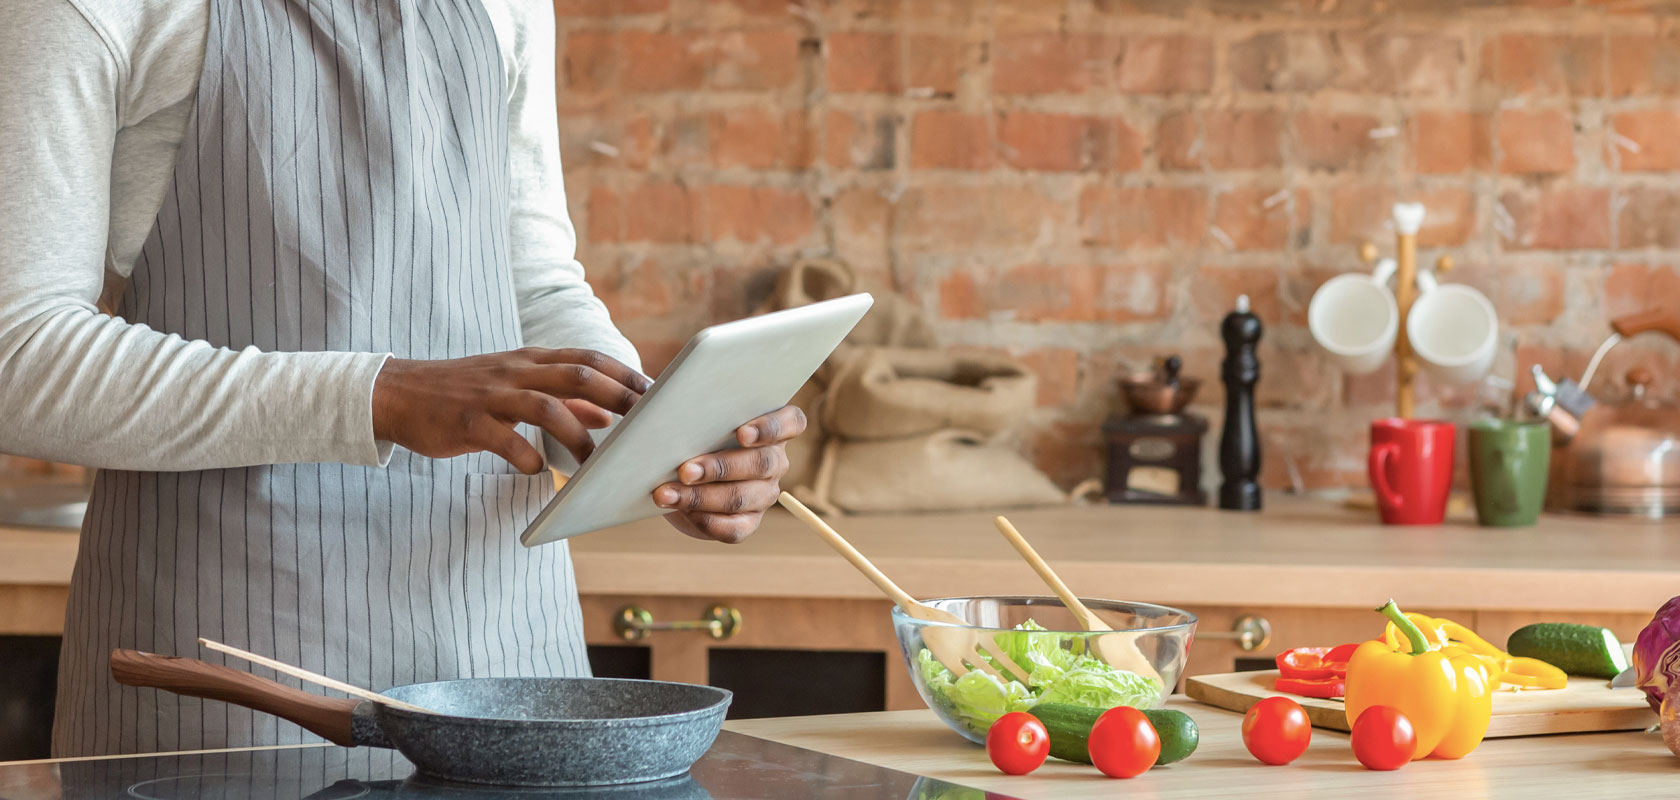 Sur La Table Online Culinary Institute, chef with gray striped apron and ipad in the kitchen